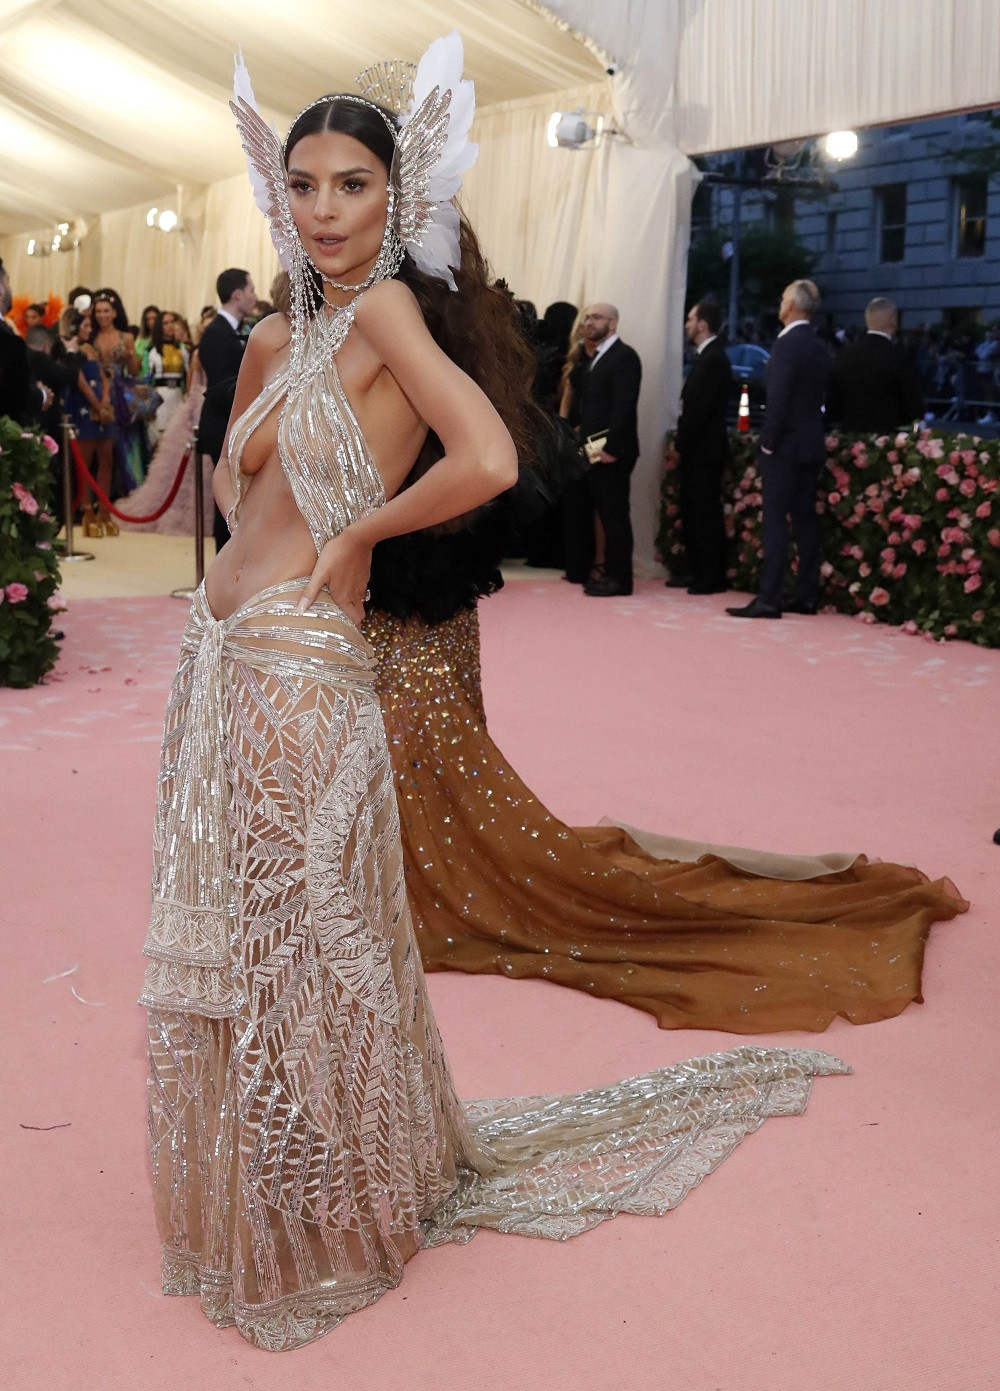 Emily Ratajkowski at the Metropolitan Museum of Art Costume Institute Gala in New York City, US, on May 6, 2019.